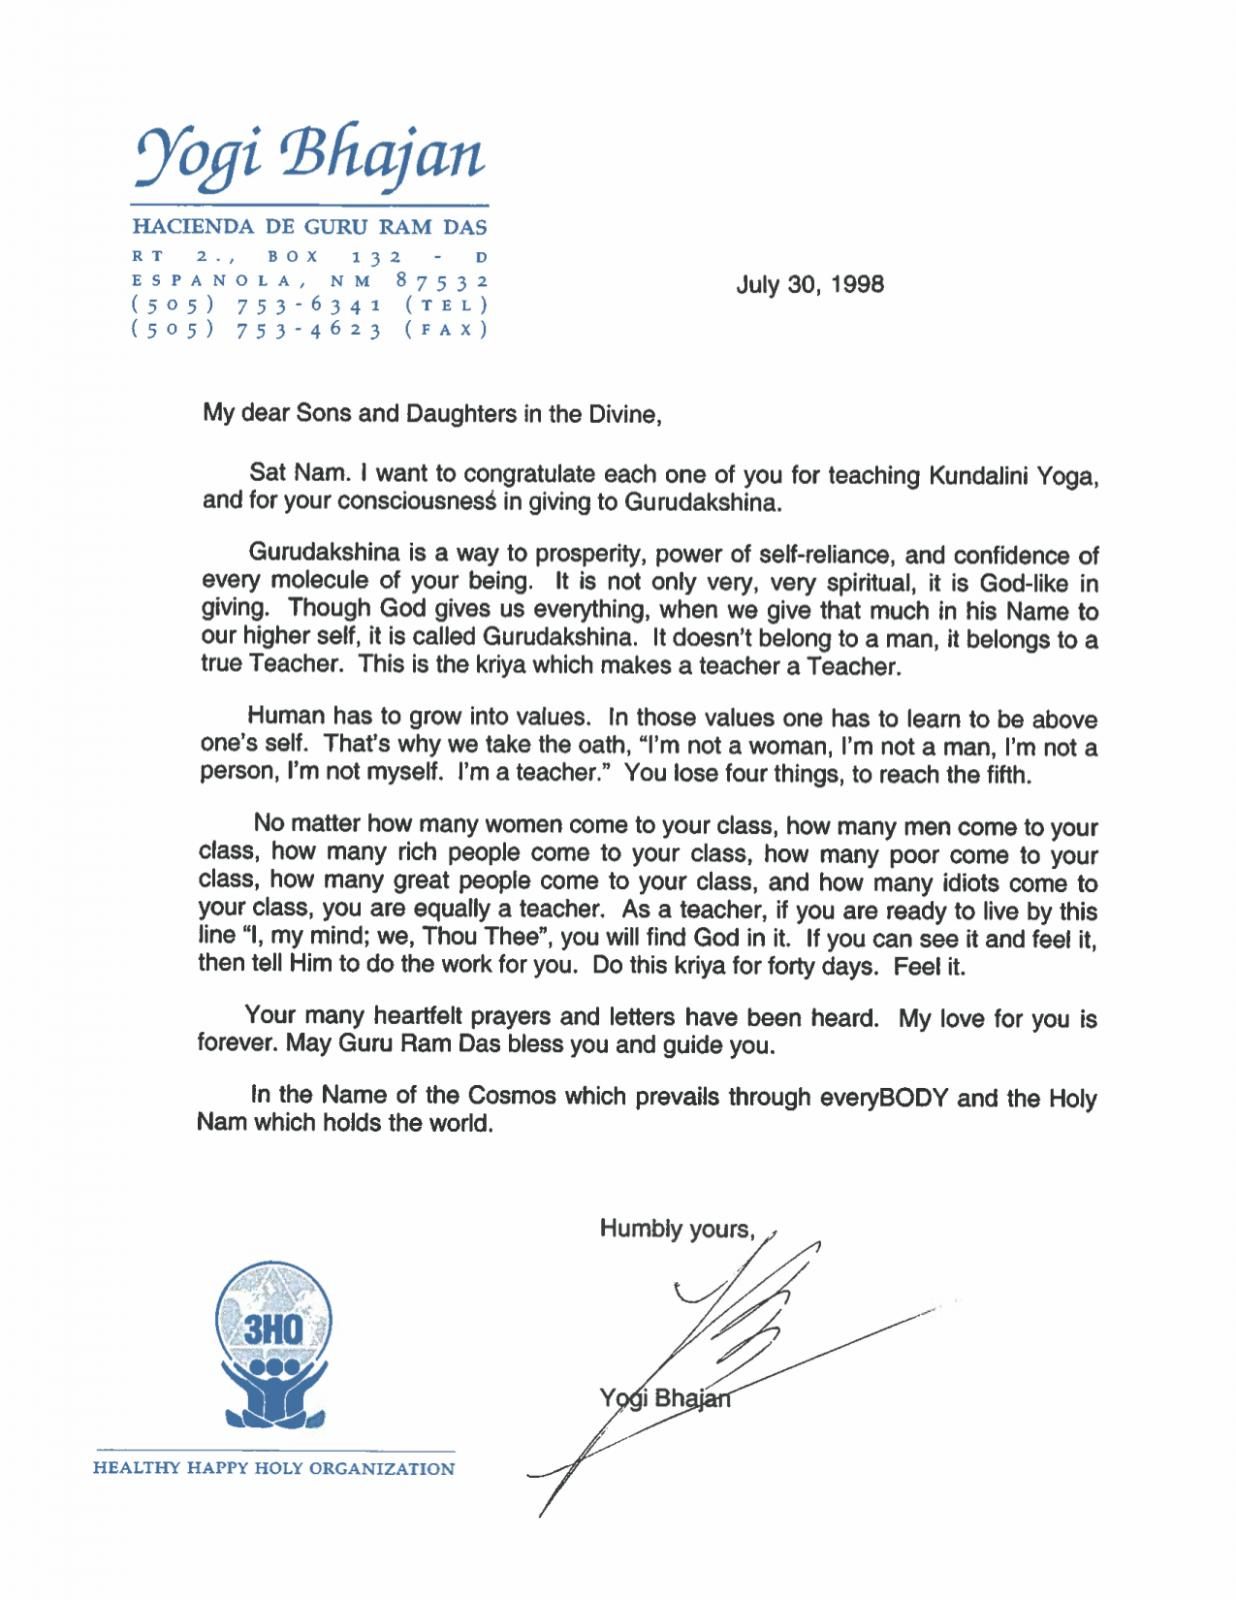 YB letter on Gurudakshina